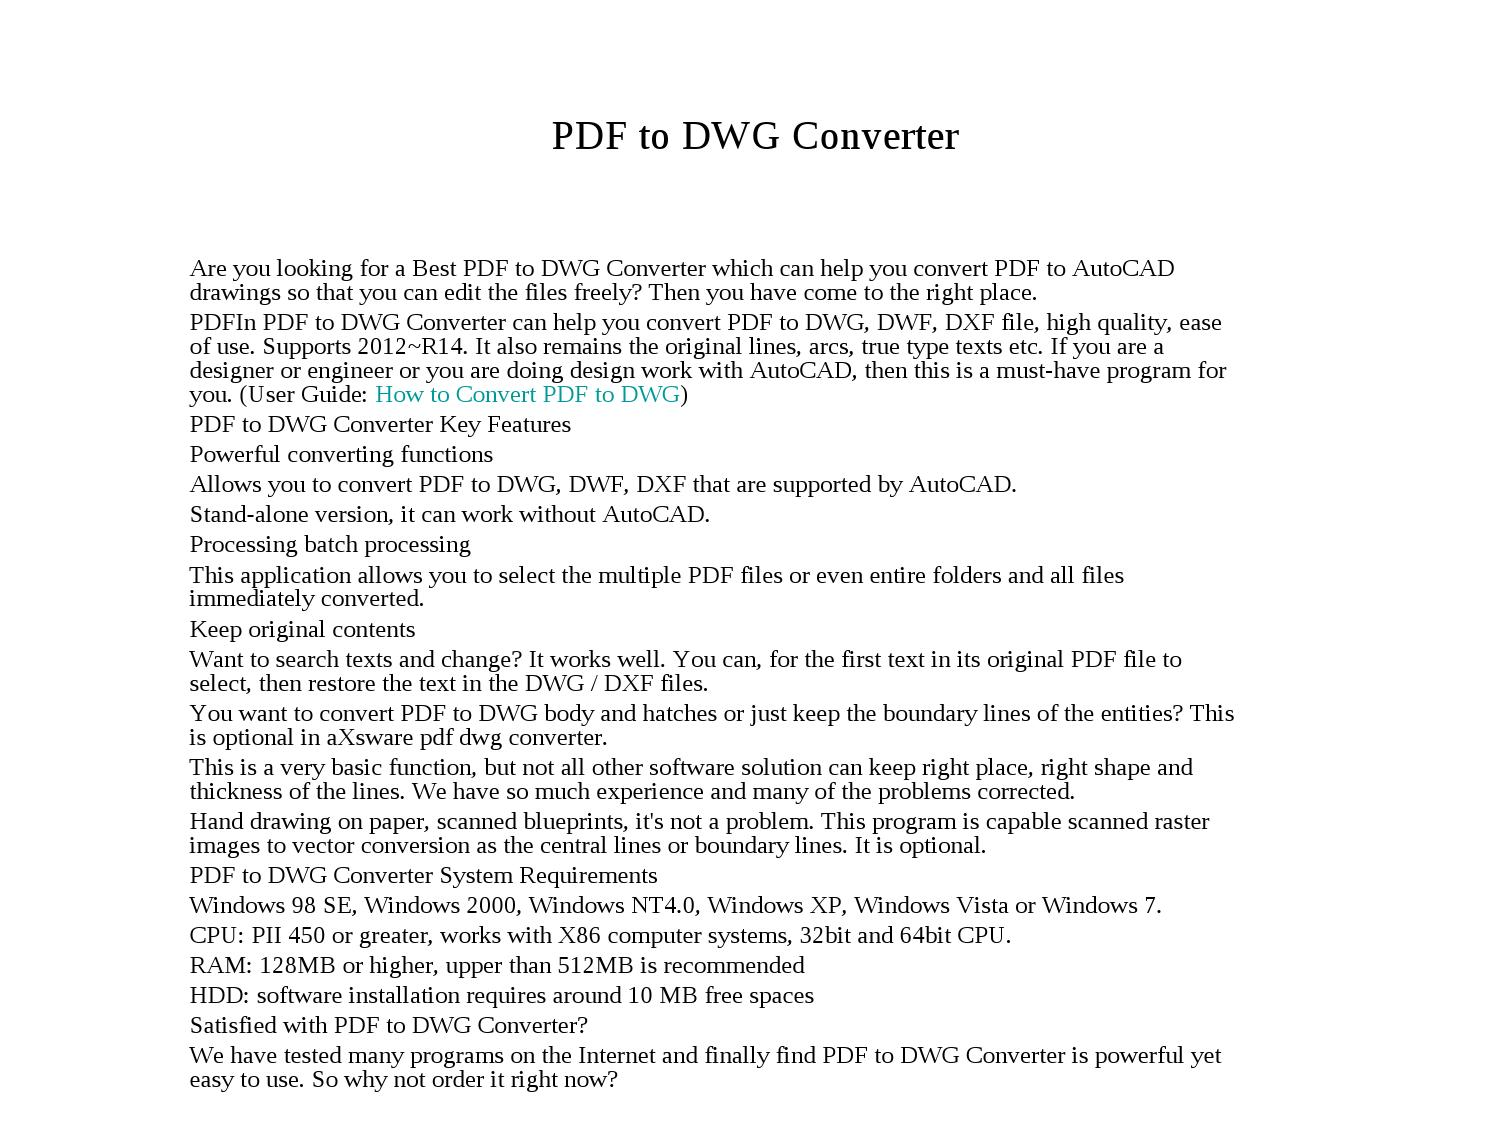 how to change dwg to pdf